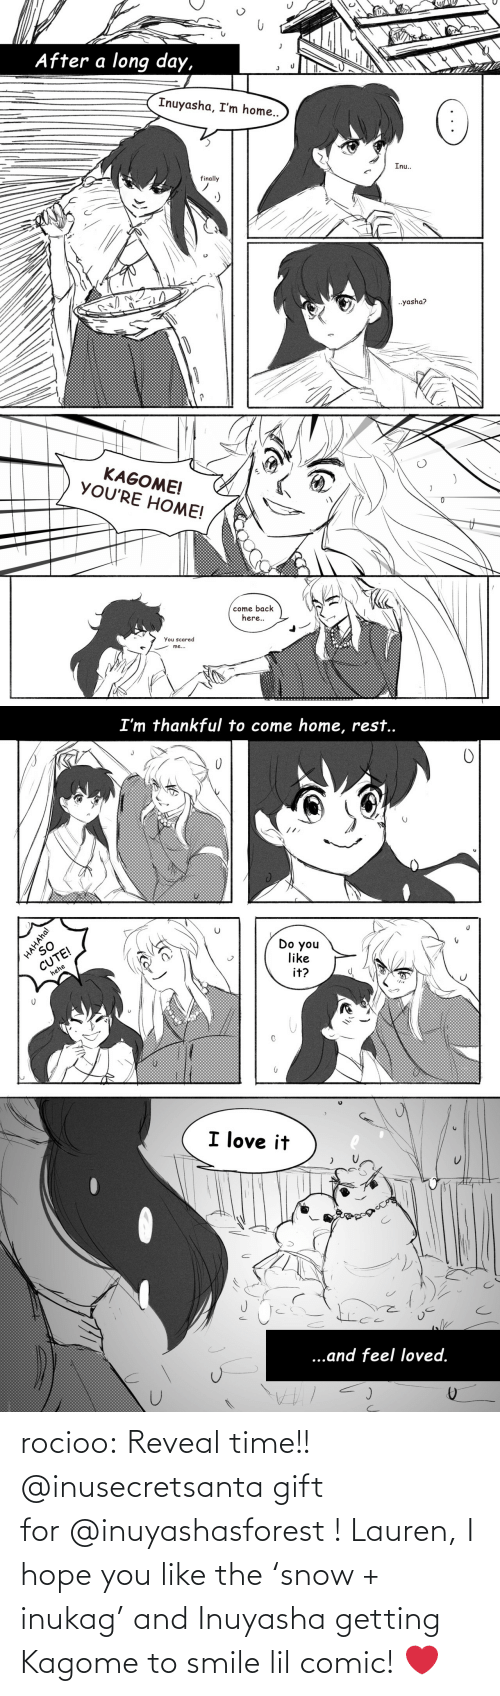 I Hope: rocioo: Reveal time!! @inusecretsanta gift for @inuyashasforest ! Lauren, I hope you like the 'snow + inukag' and Inuyasha getting Kagome to smile lil comic! ❤